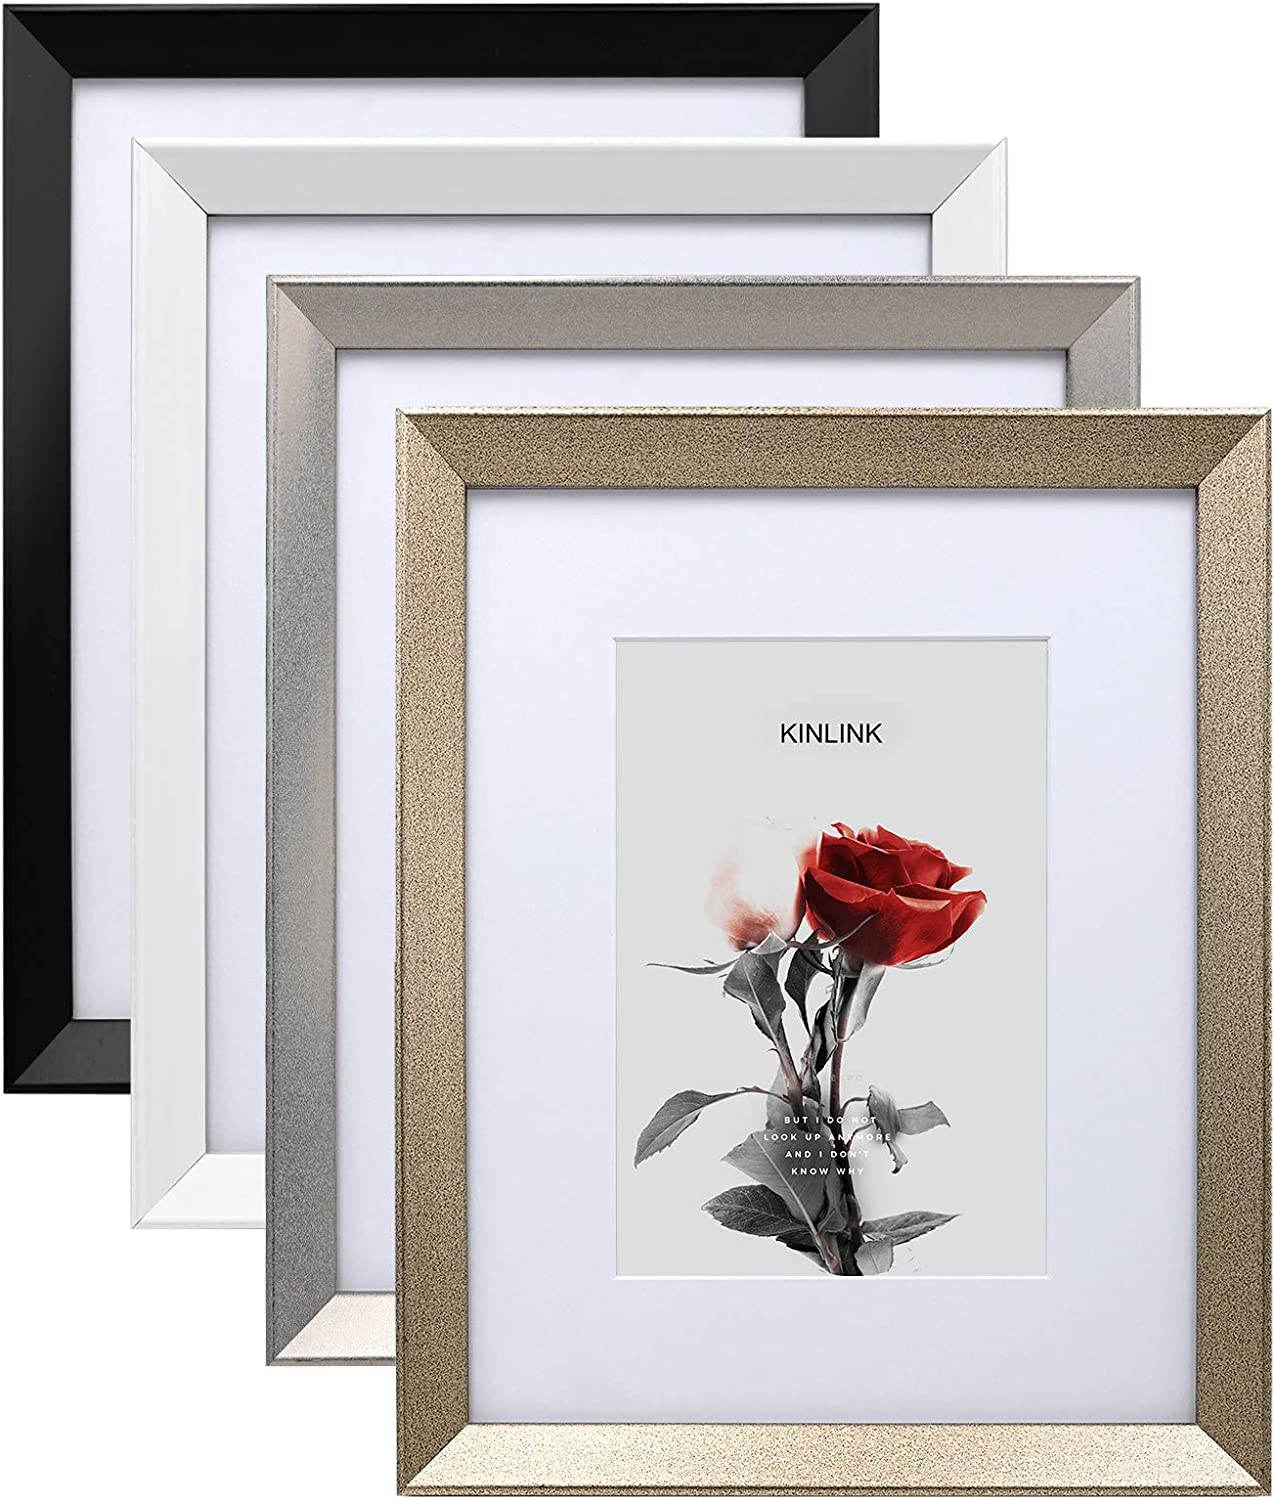 KINLINK 8x10 Picture Frames Set of 4, Sturdy Wood Composite Photo Frames with Real Glass for Pictures 5x7 with Mat or 8x10 without Mat, Tabletop and Wall Mounting Display